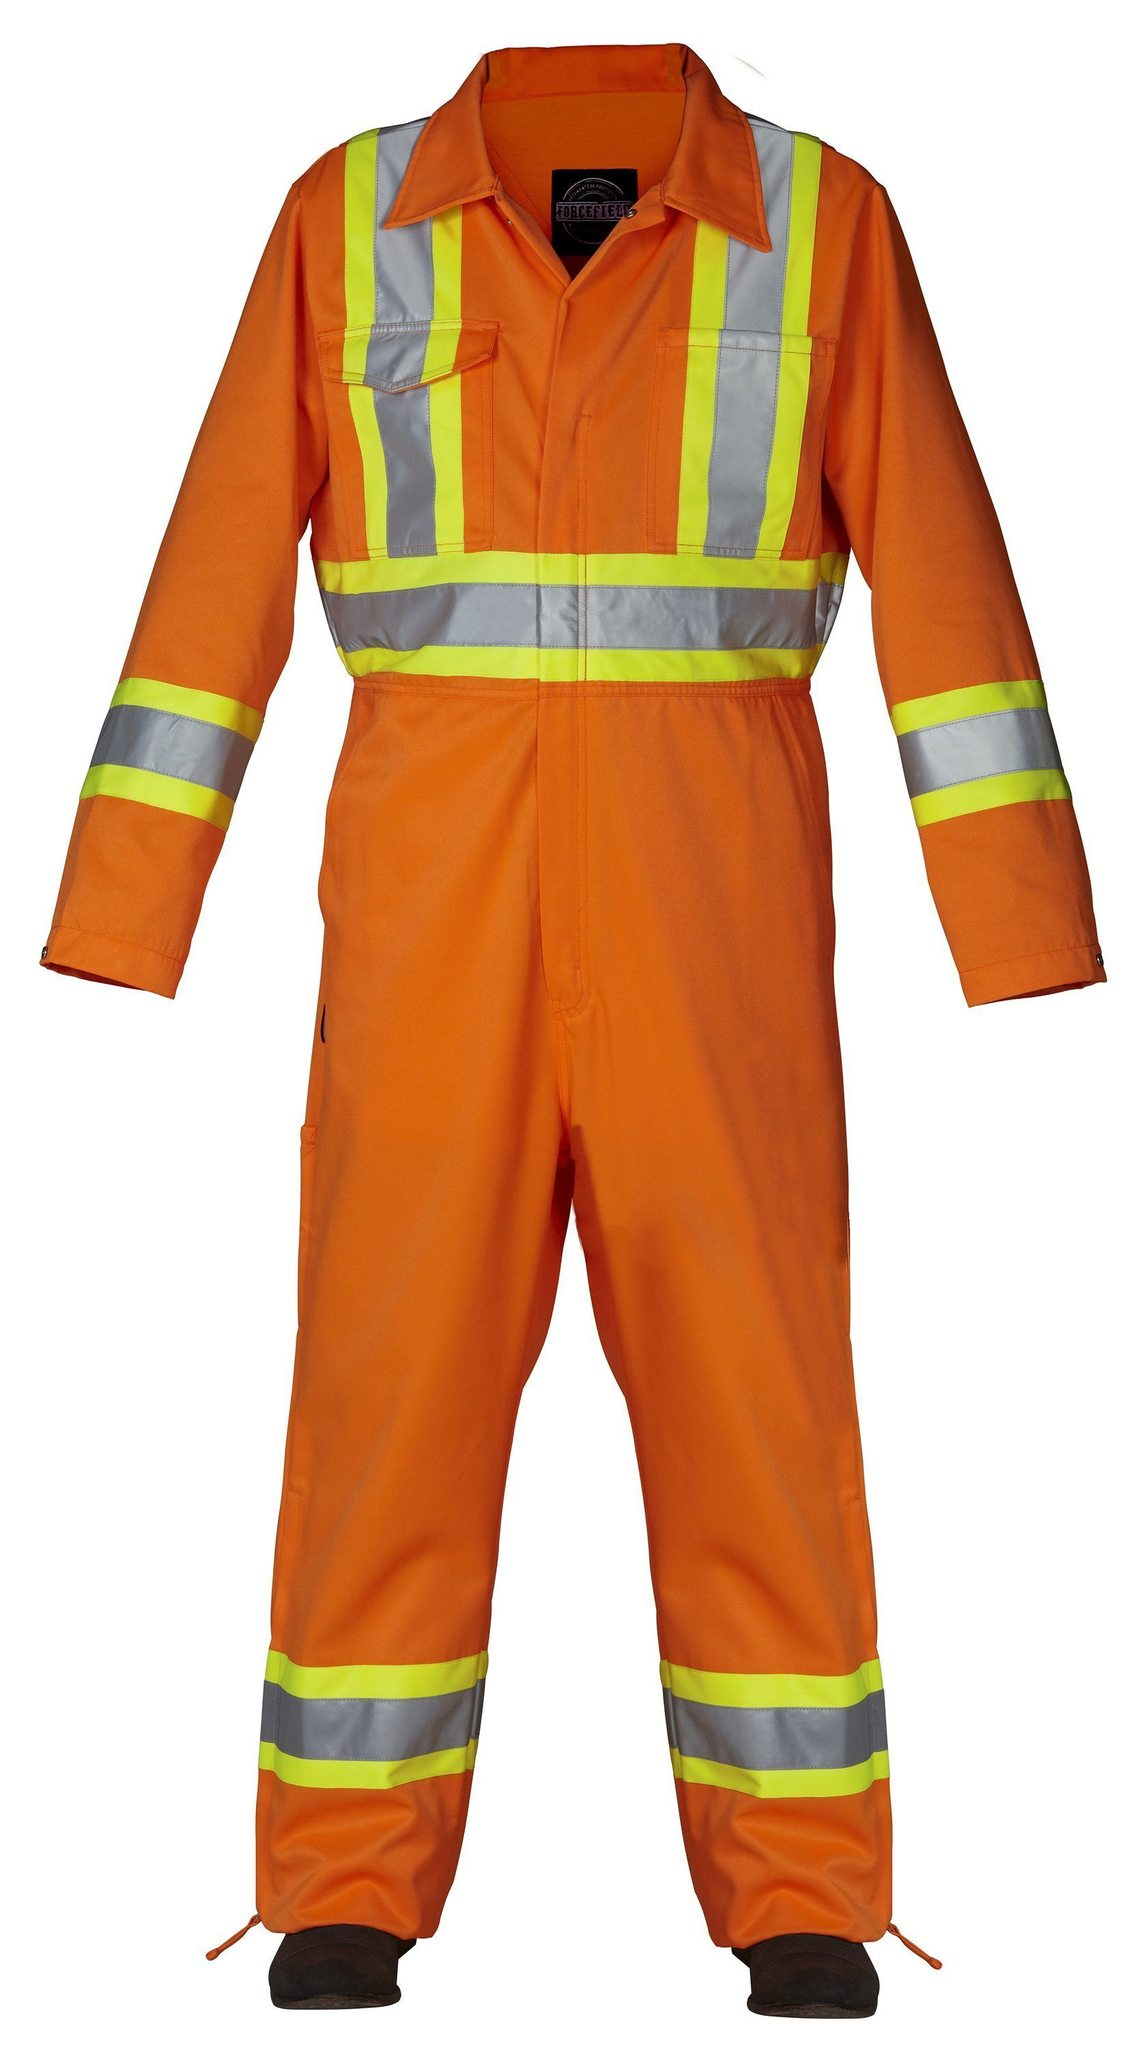 Forcefield Hi-Vis poly cotton Coverall 024-OR145-ORANGE